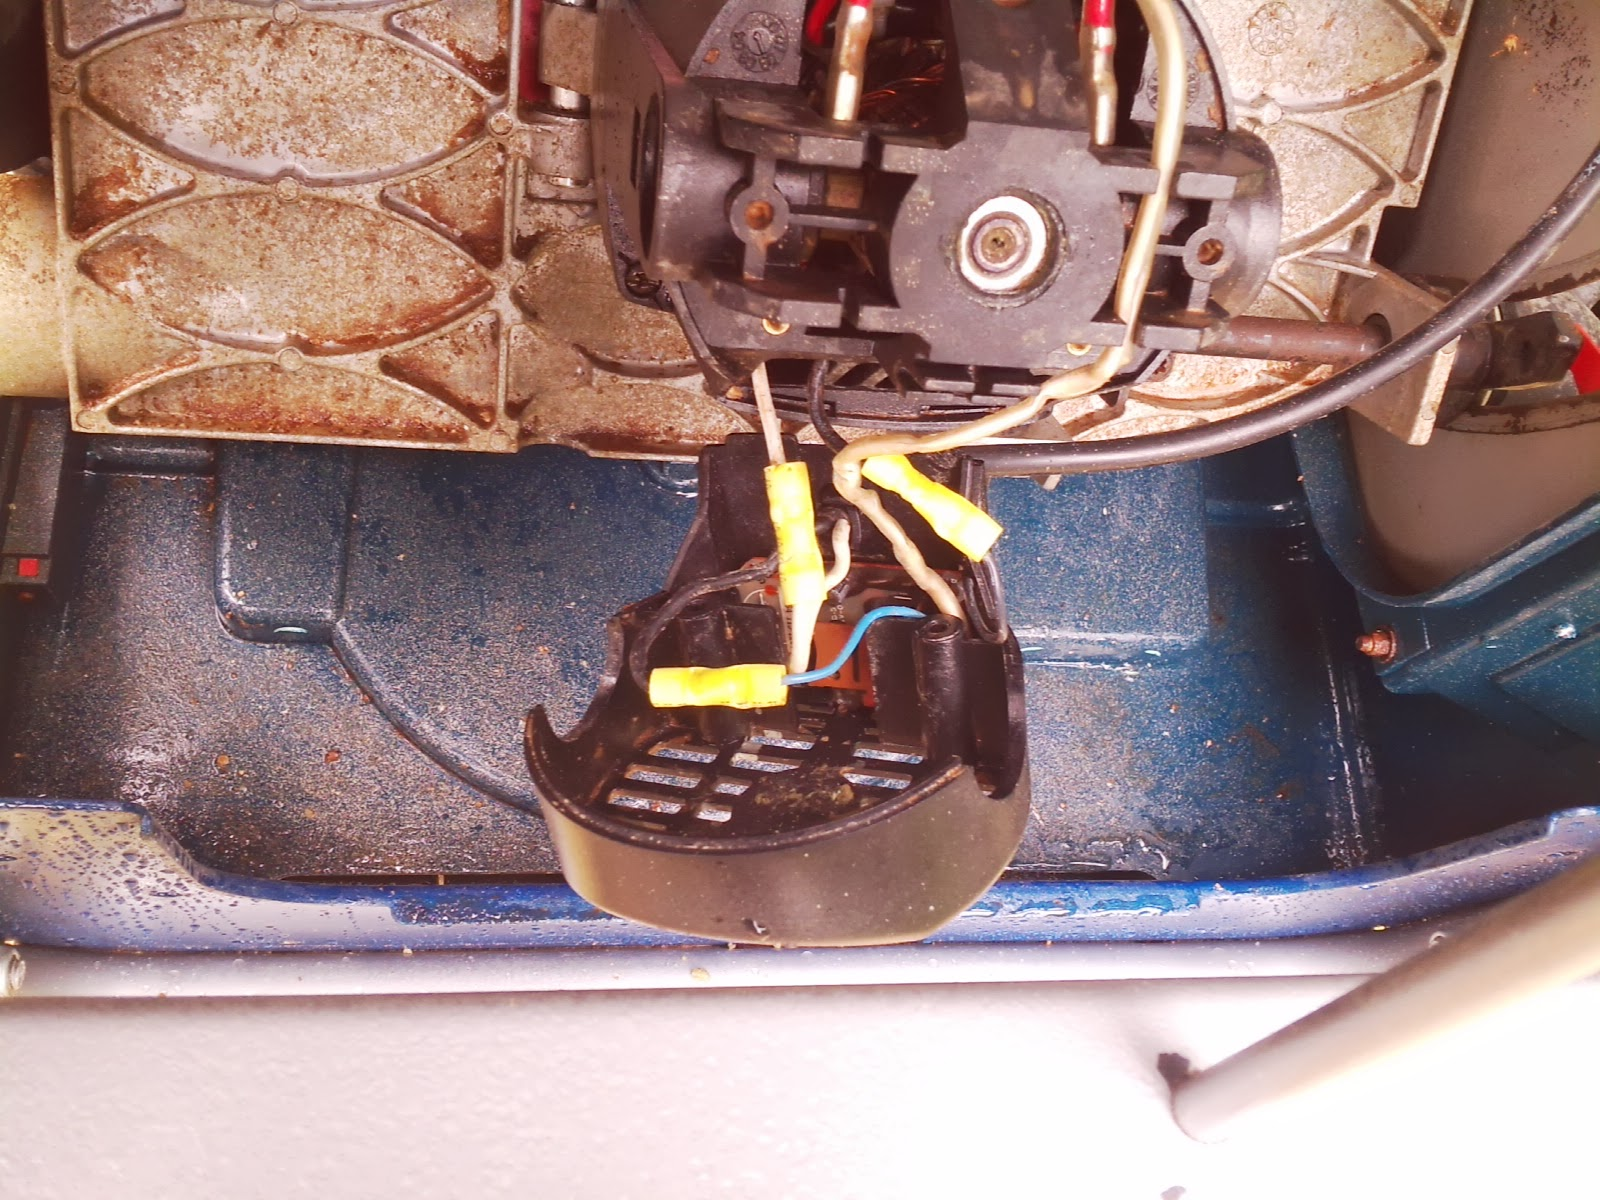 medium resolution of here is a really bad wiring photo i m having computer issues at the moment